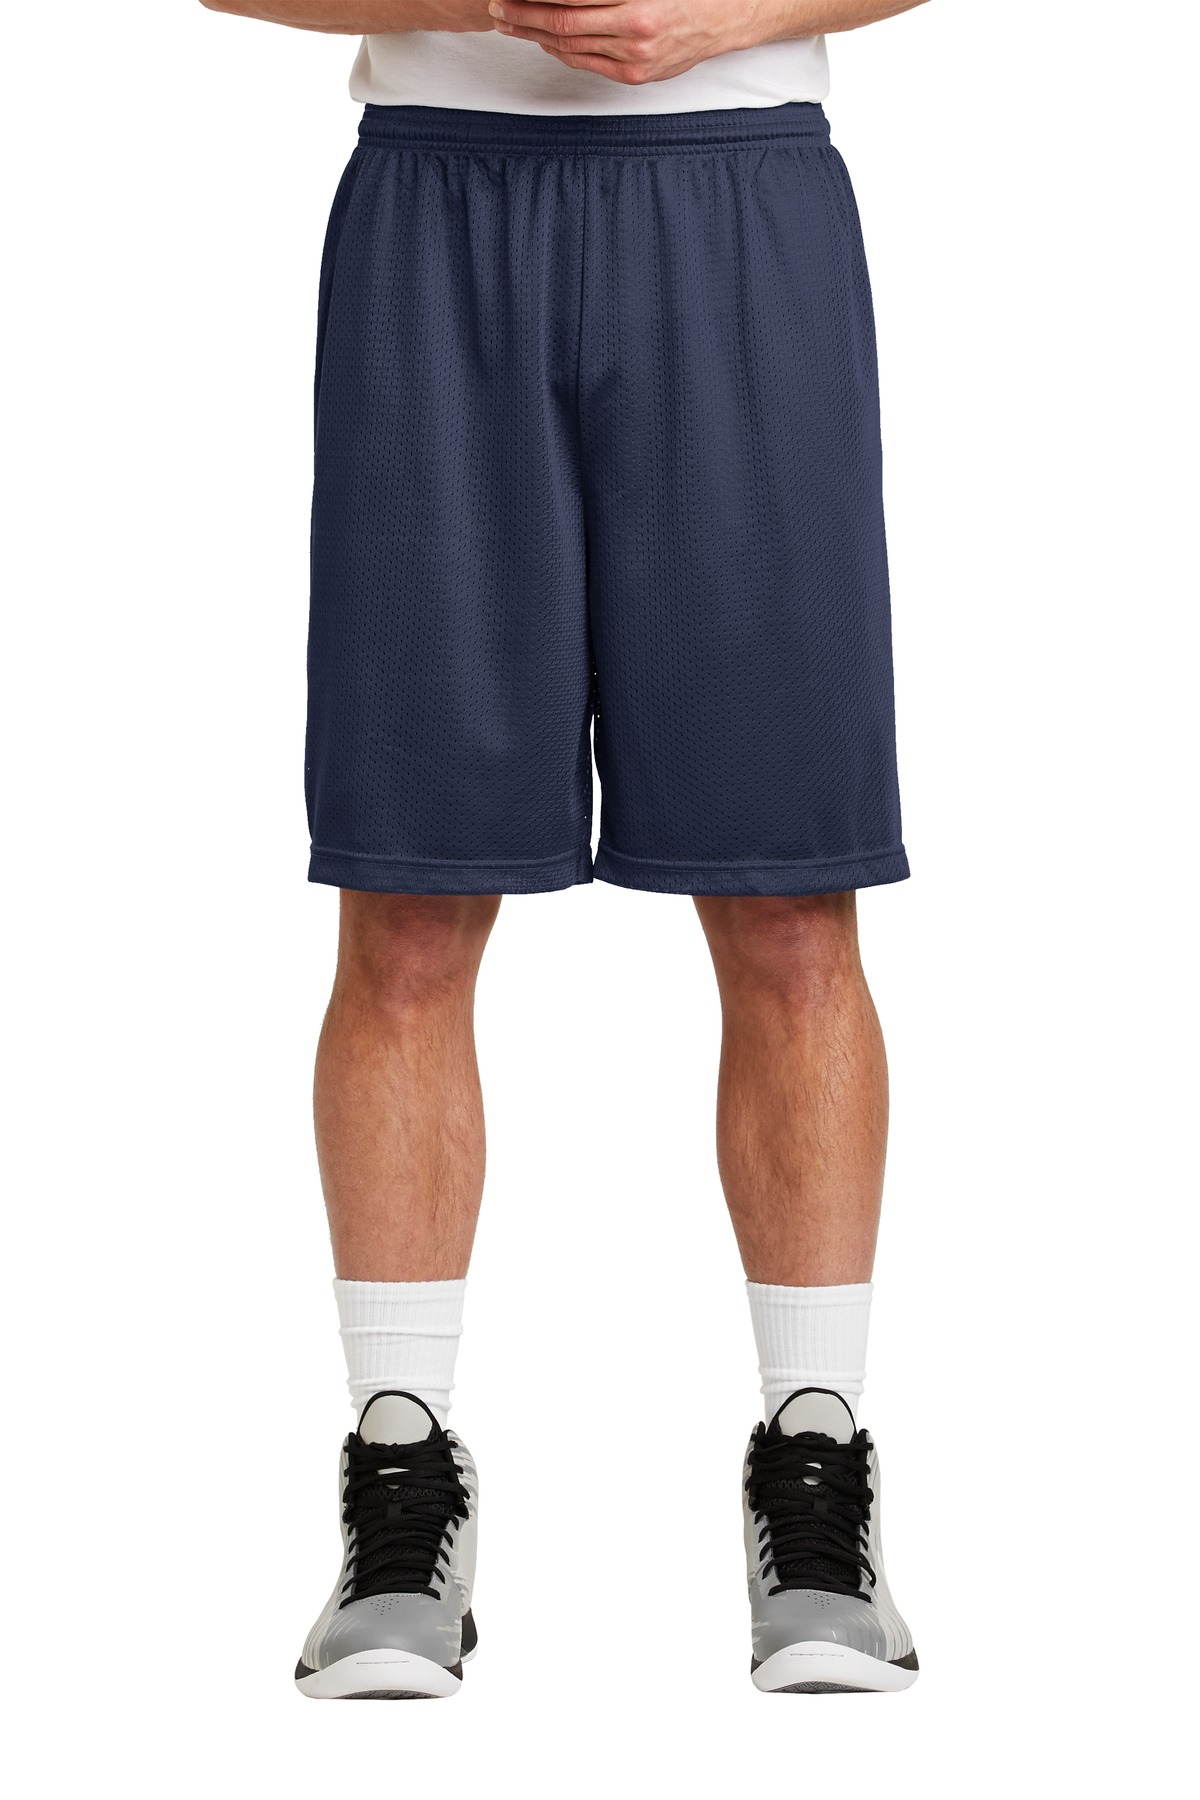 Sport-Tek ®  Long PosiCharge ®  Classic Mesh Short. ST515 - True Navy